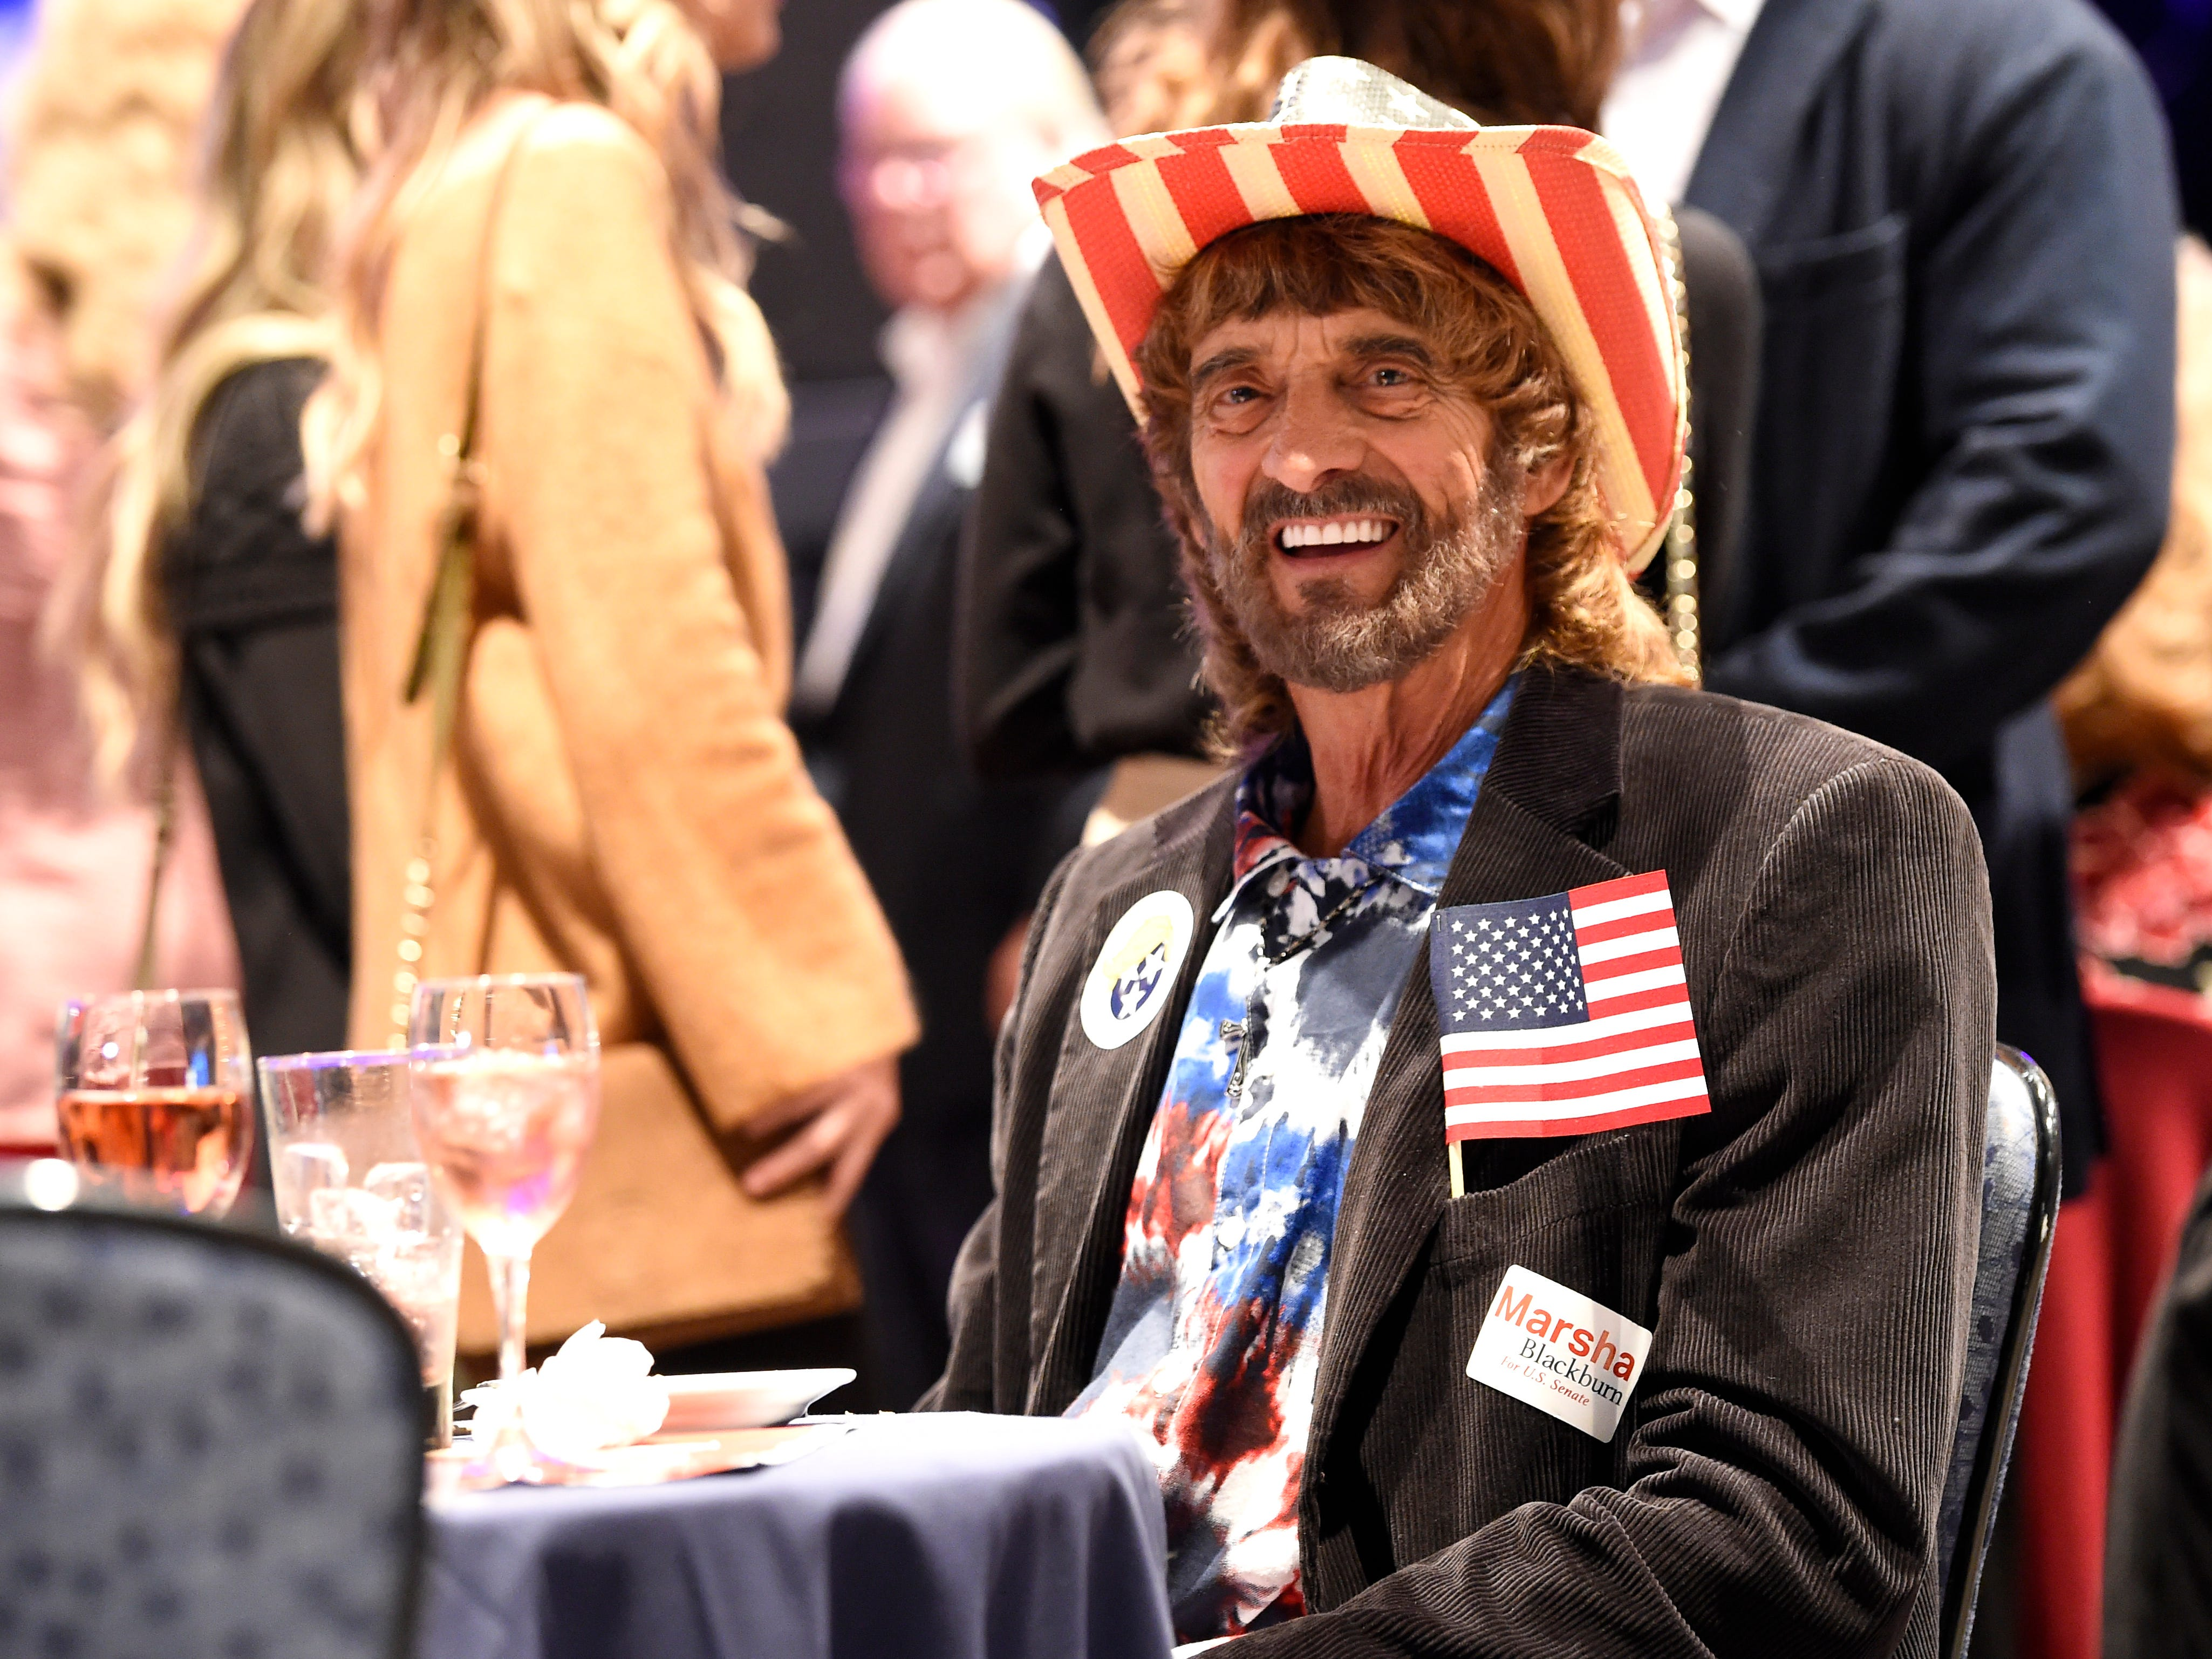 Robert Payne is decked out in red, white and blue at the election night watch party for Republican U.S. Senate candidate Marsha Blackburn  Tuesday, Nov. 6, 2018, in Franklin, Tenn.